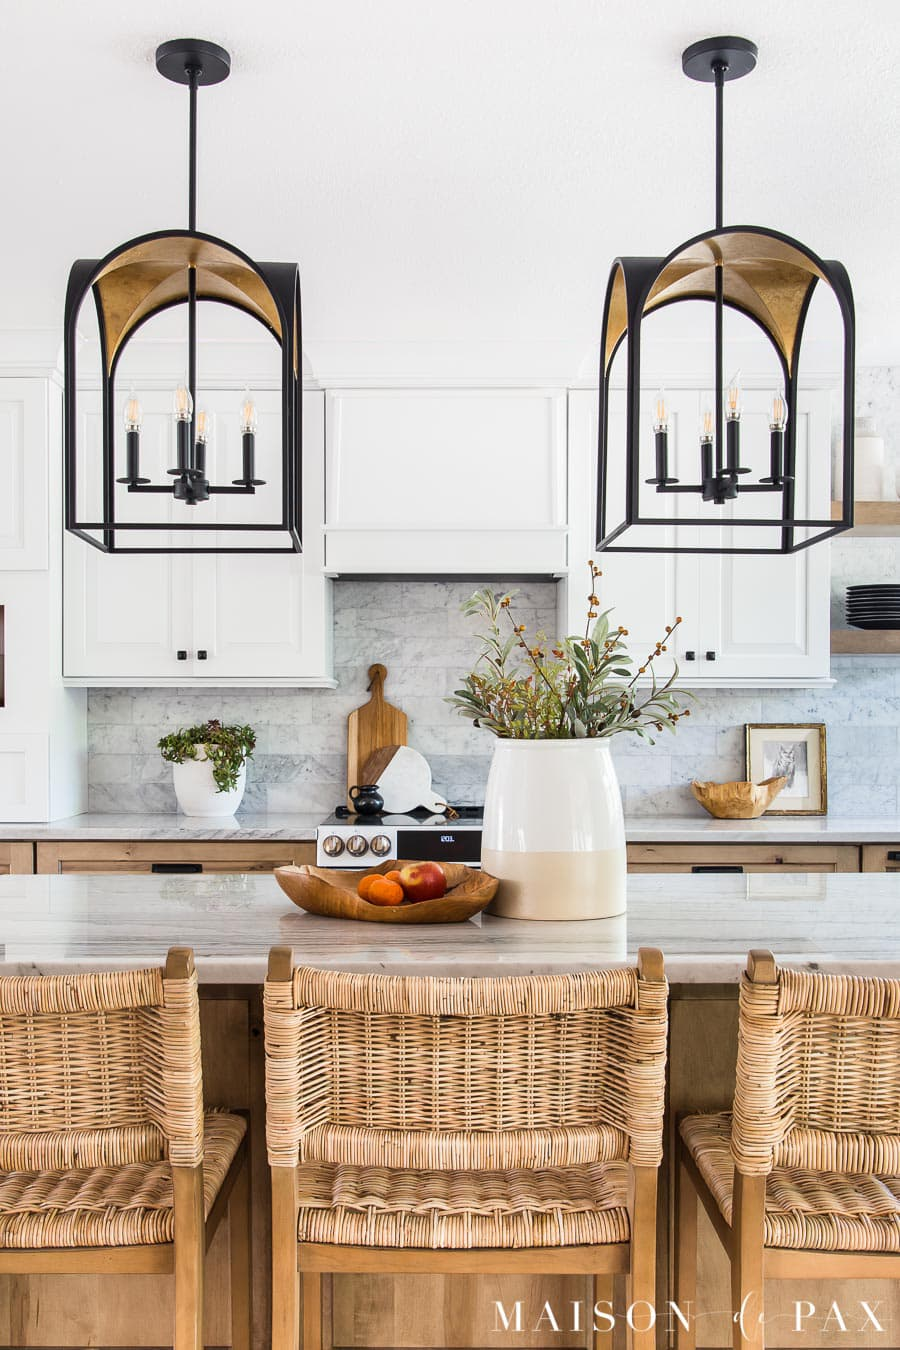 white and wood kitchen with black and gold island pendant lights | Maison de Pax